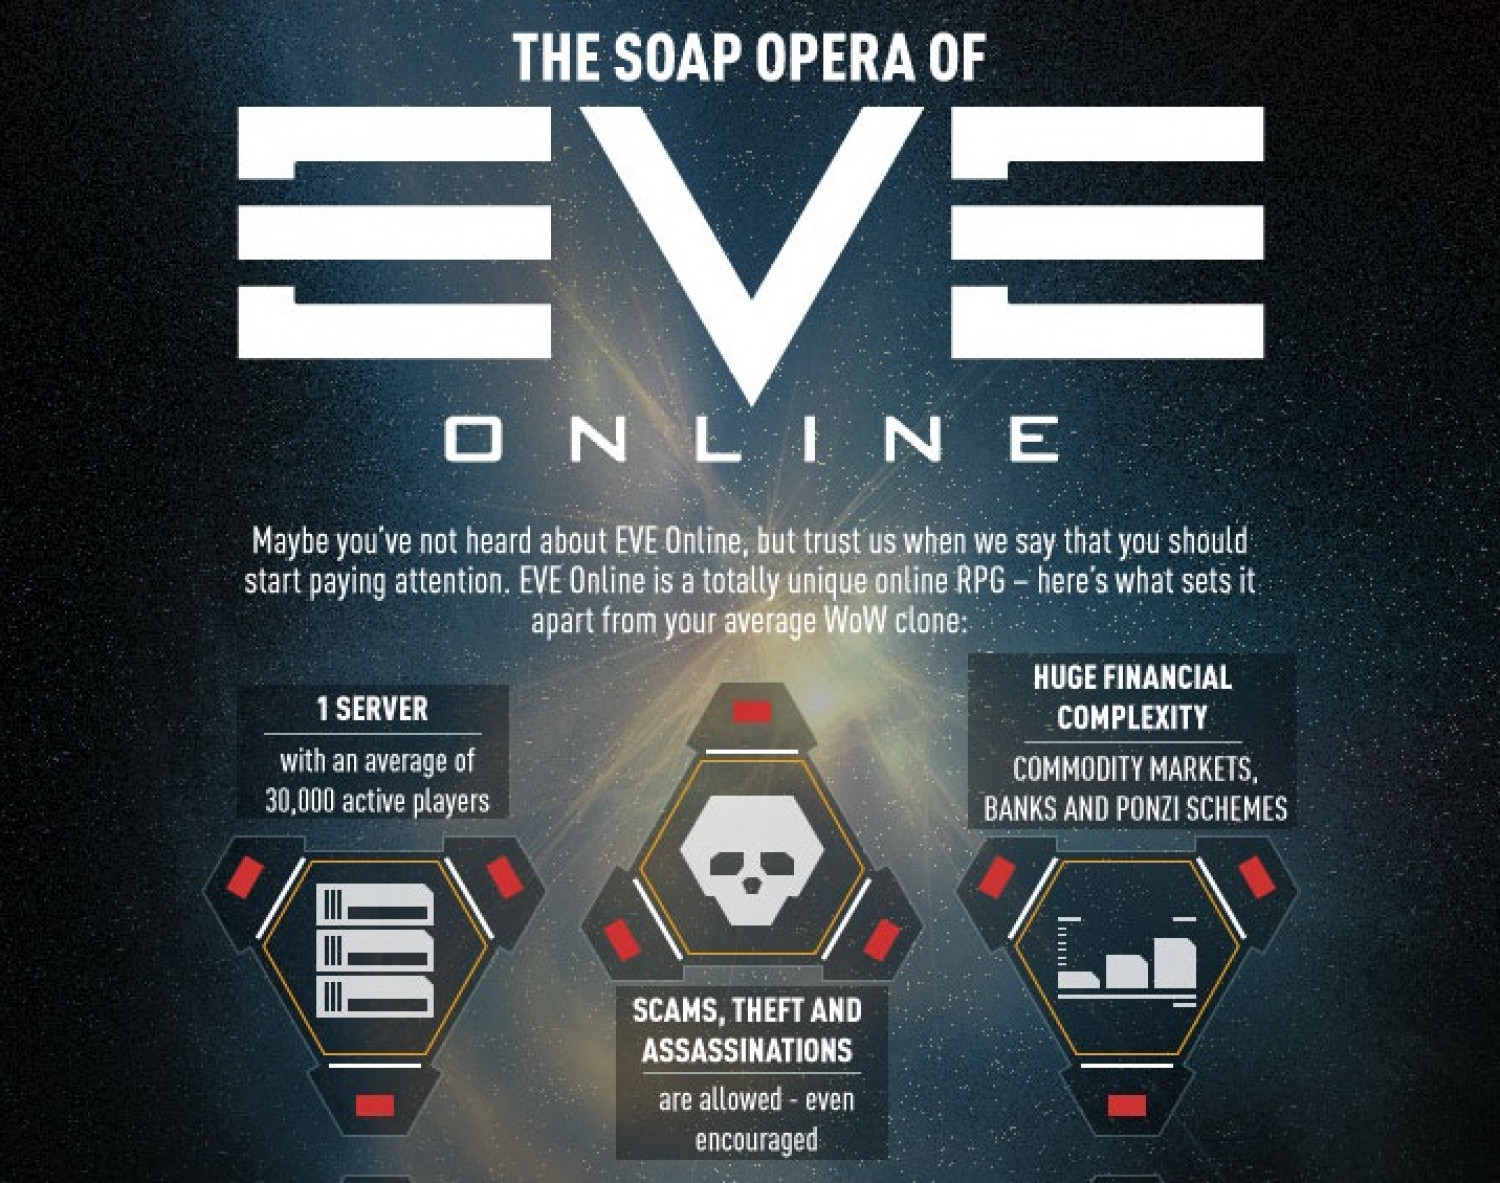 The Soap Opera of EVE Online Infographic